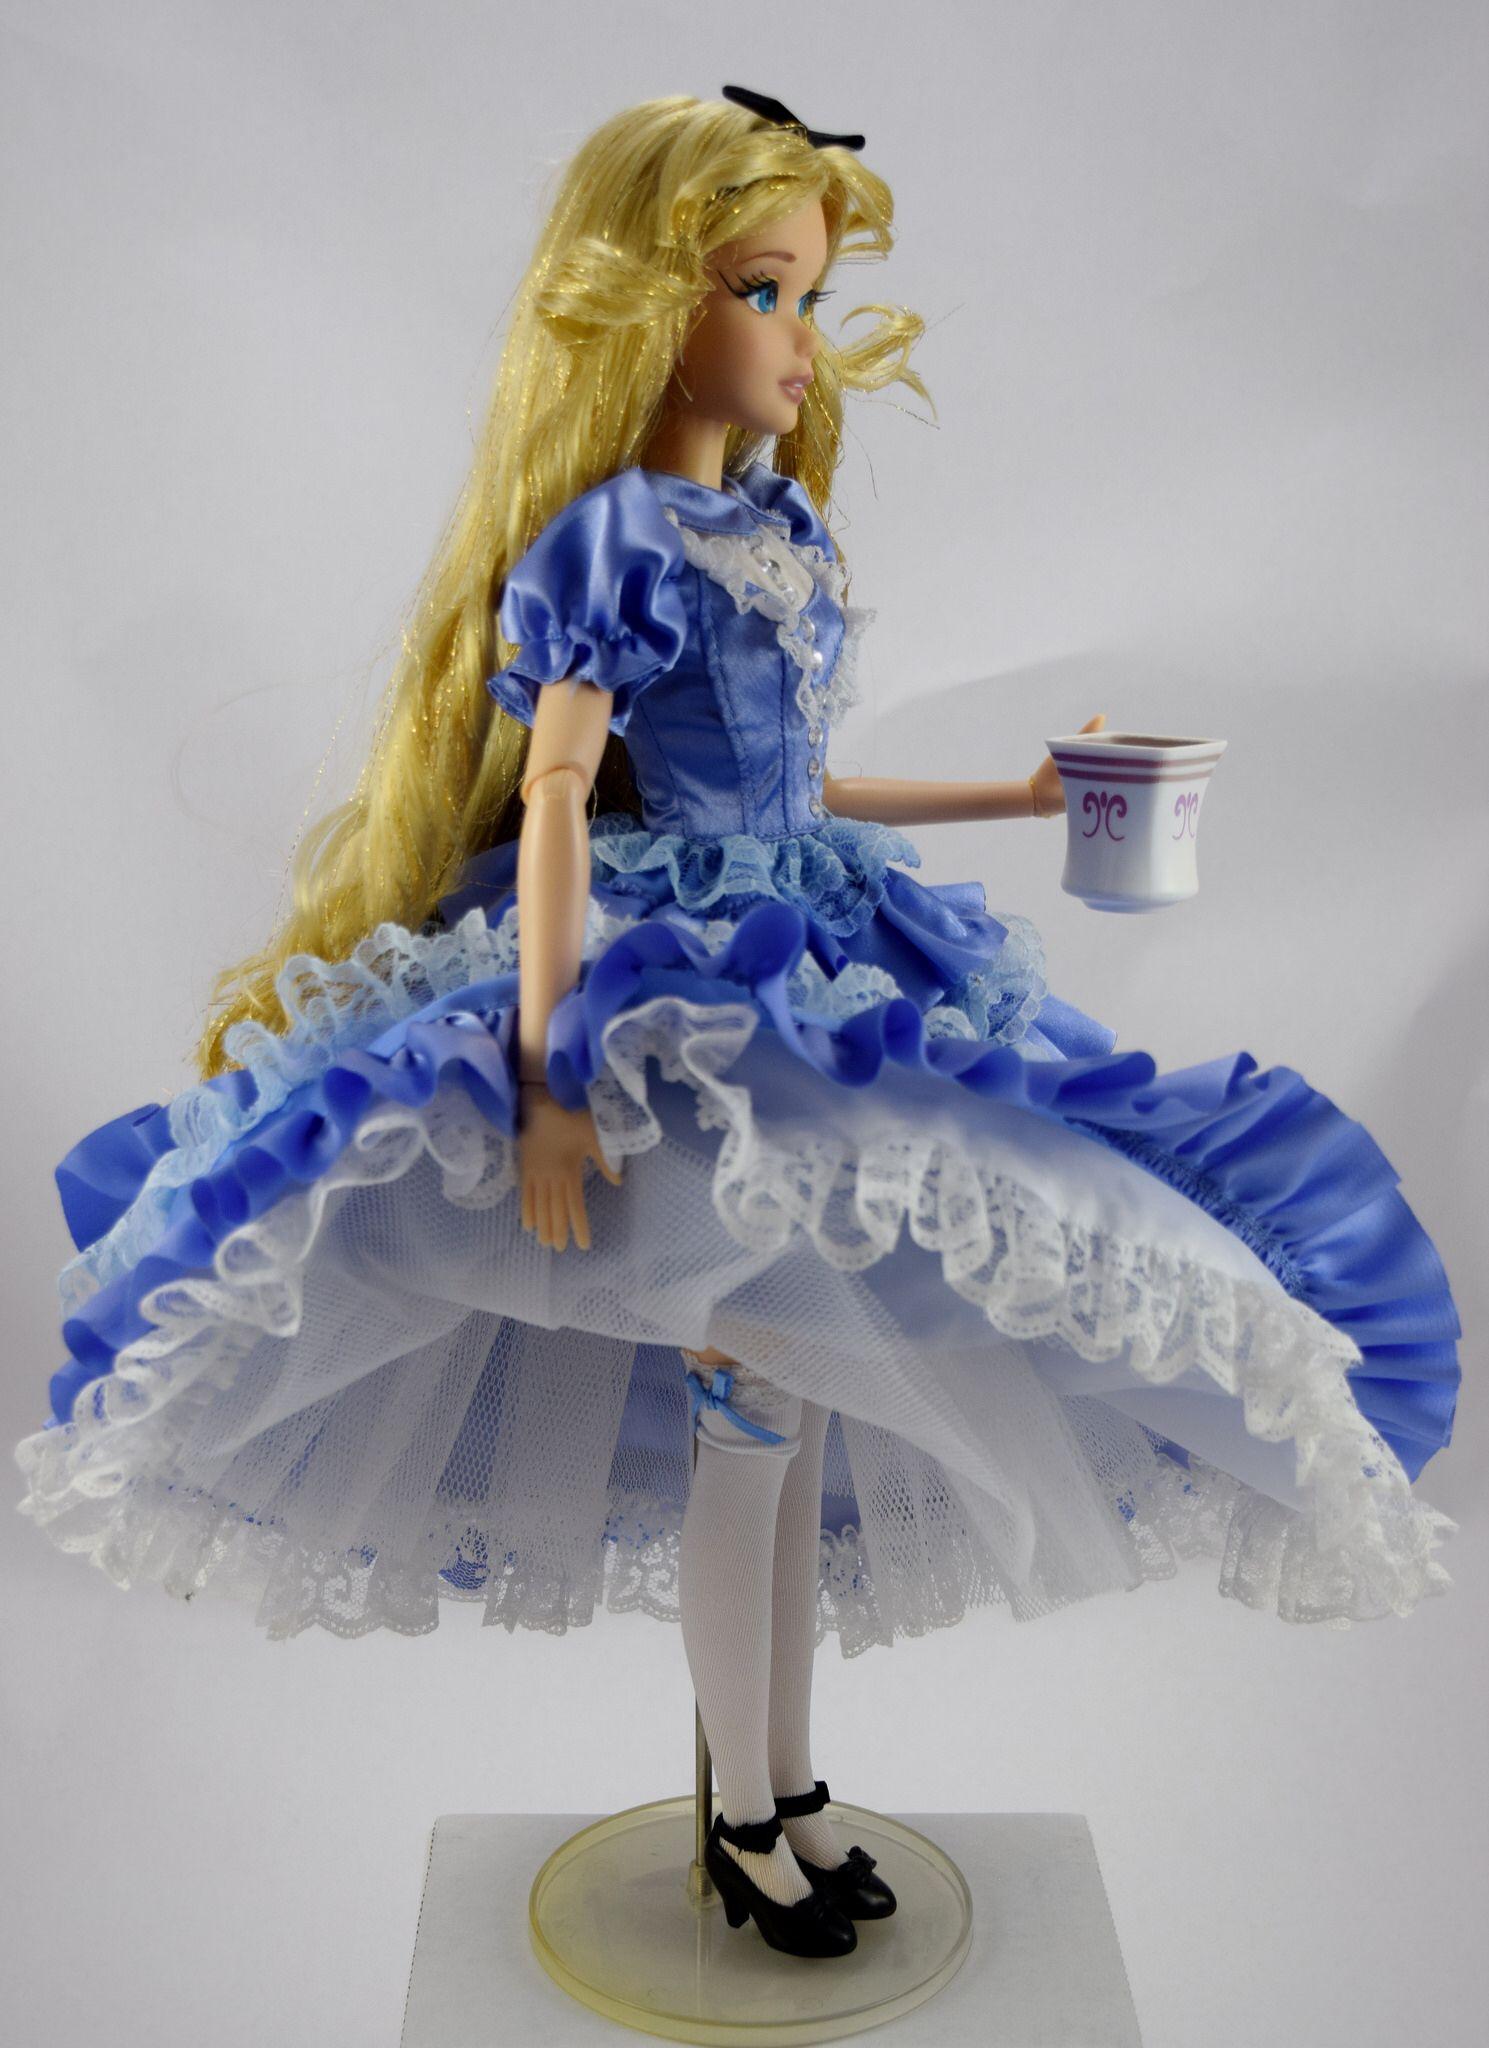 Dresses skirts clothes women disney store - Limited Edition Alice In Wonderland 17 Doll Disney Store Ebay Purchase